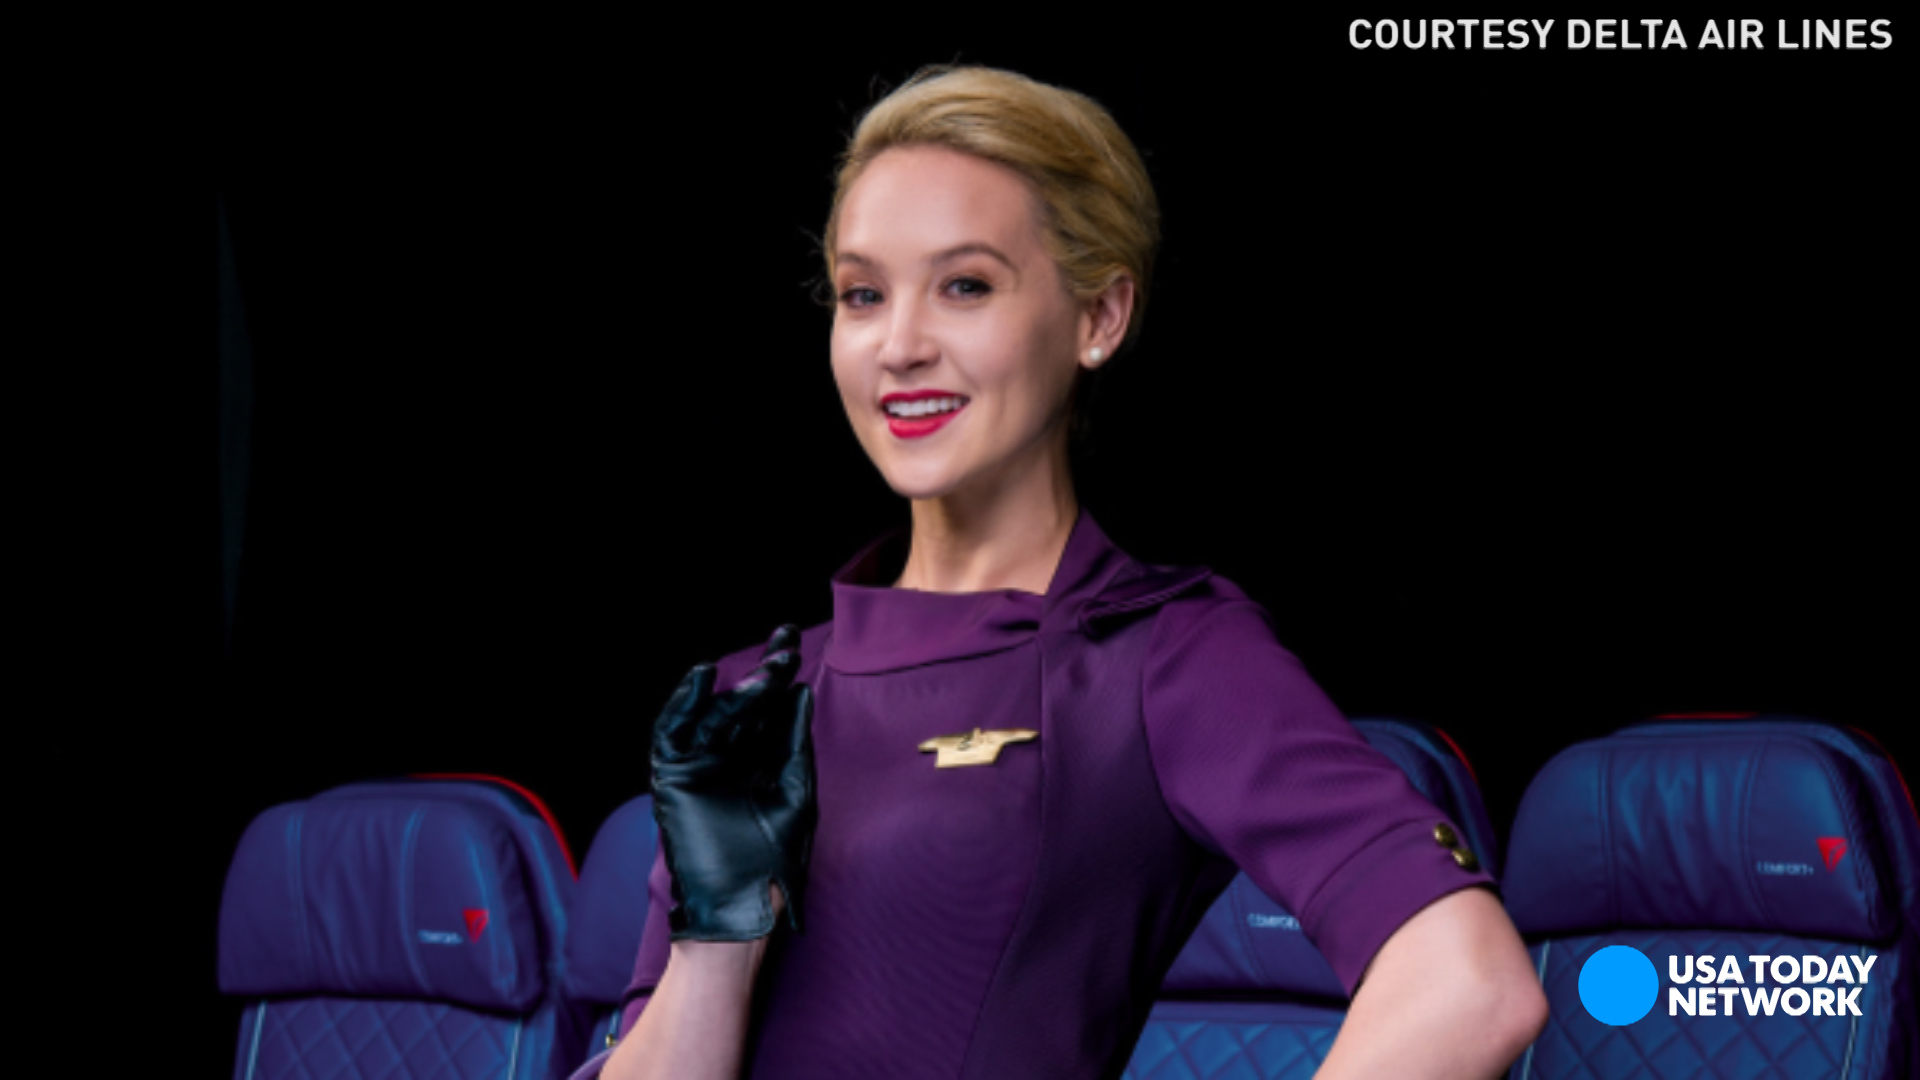 Delta's 60,000 frontline workers will wear new uniforms designed by Zac Posen and made by Lands' End.